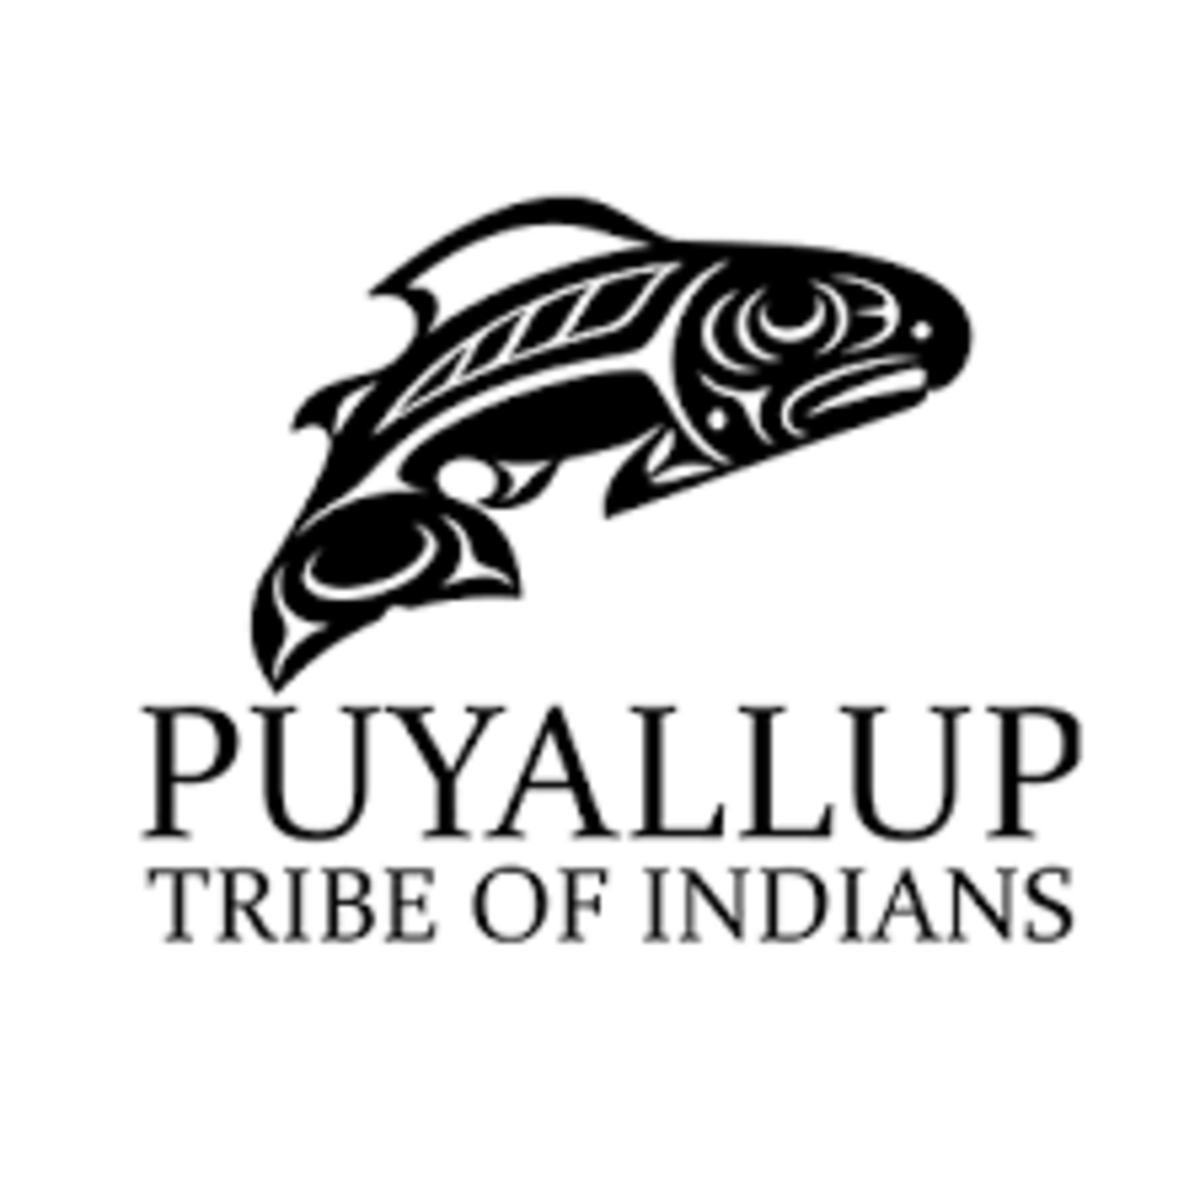 Puyallup Tribe of Indians - logo